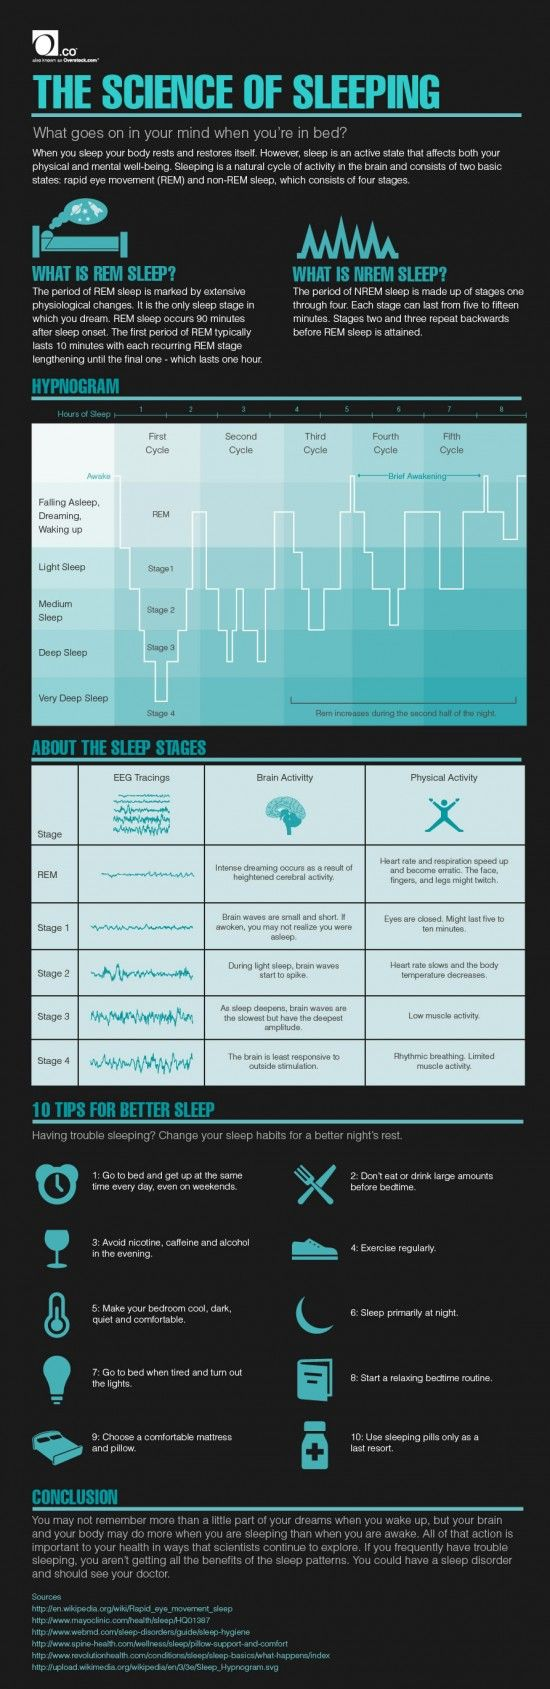 Why Getting Enough Sleep Is Good for the Brain